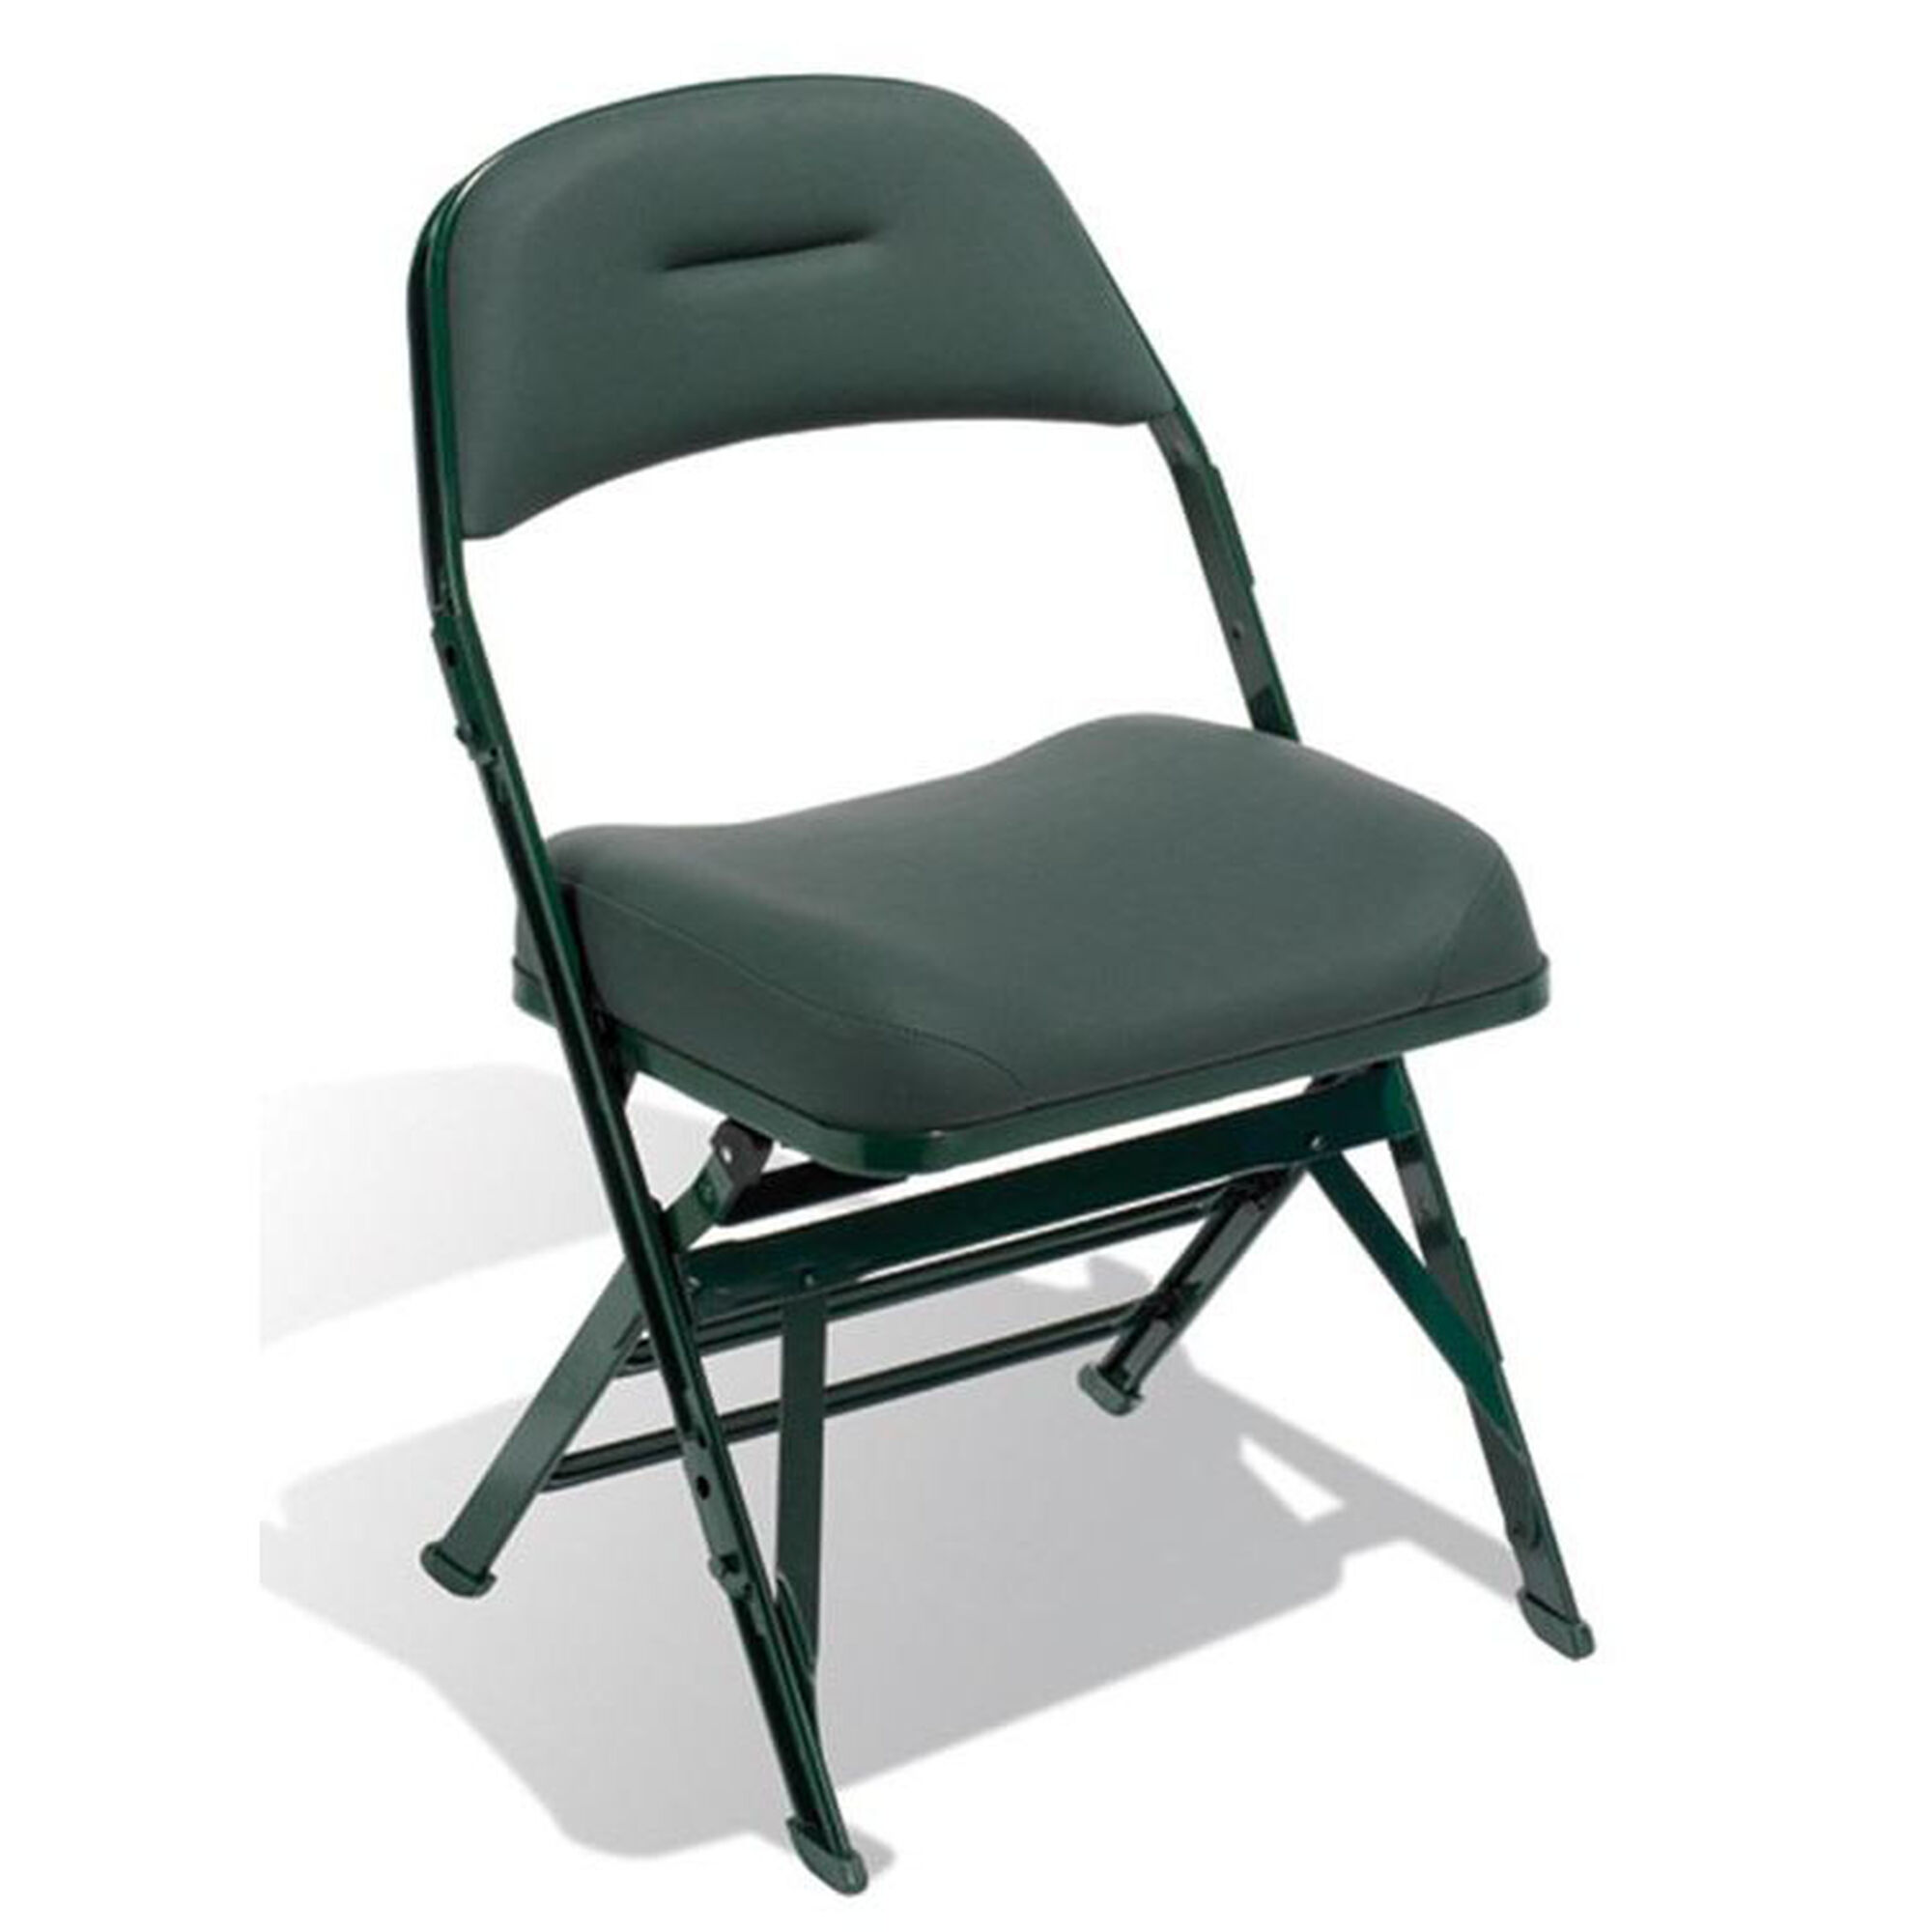 Wondrous Contour Series Upholstered Seat And Back 19 5 W Folding Chair With Manual Uplift Seat Bralicious Painted Fabric Chair Ideas Braliciousco